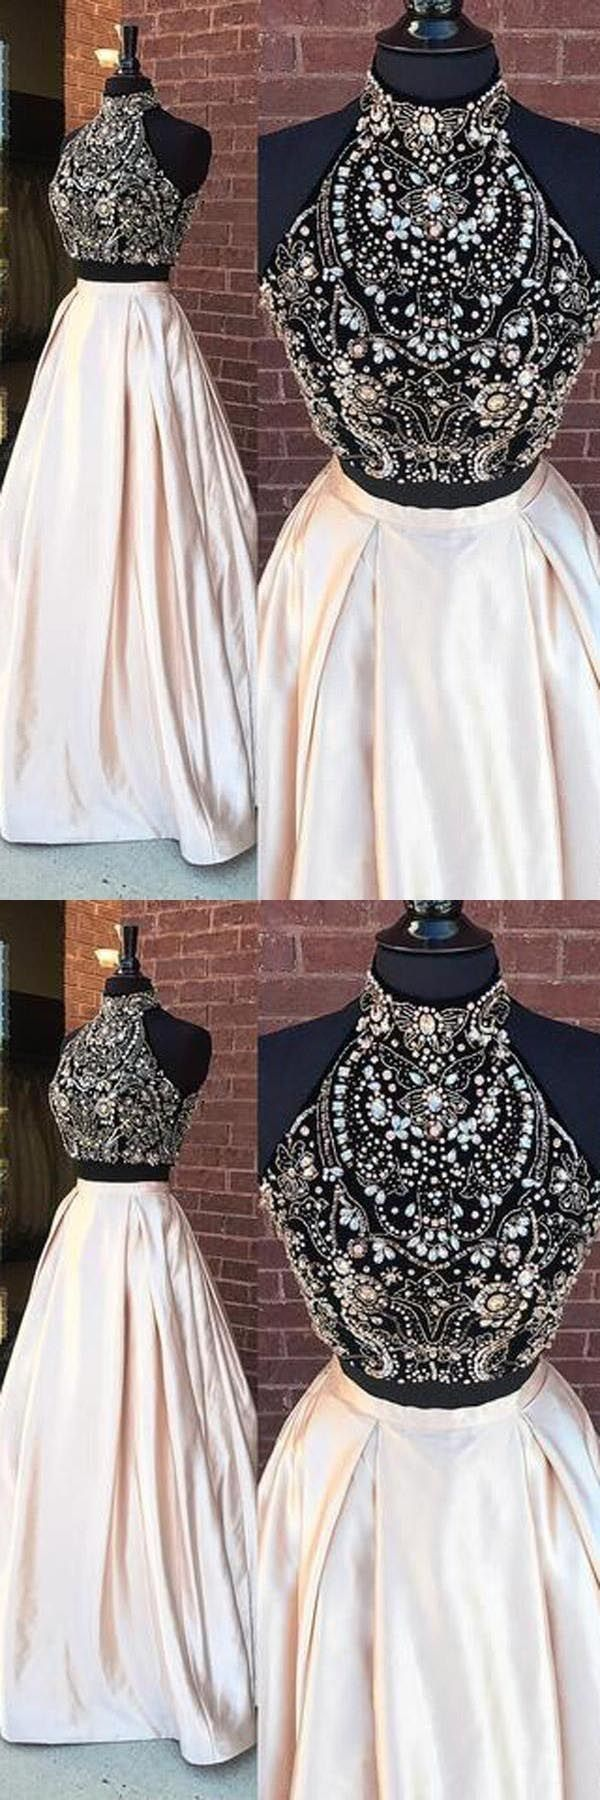 2693 best Outfit/Kleider images on Pinterest | Cute dresses, Prom ...